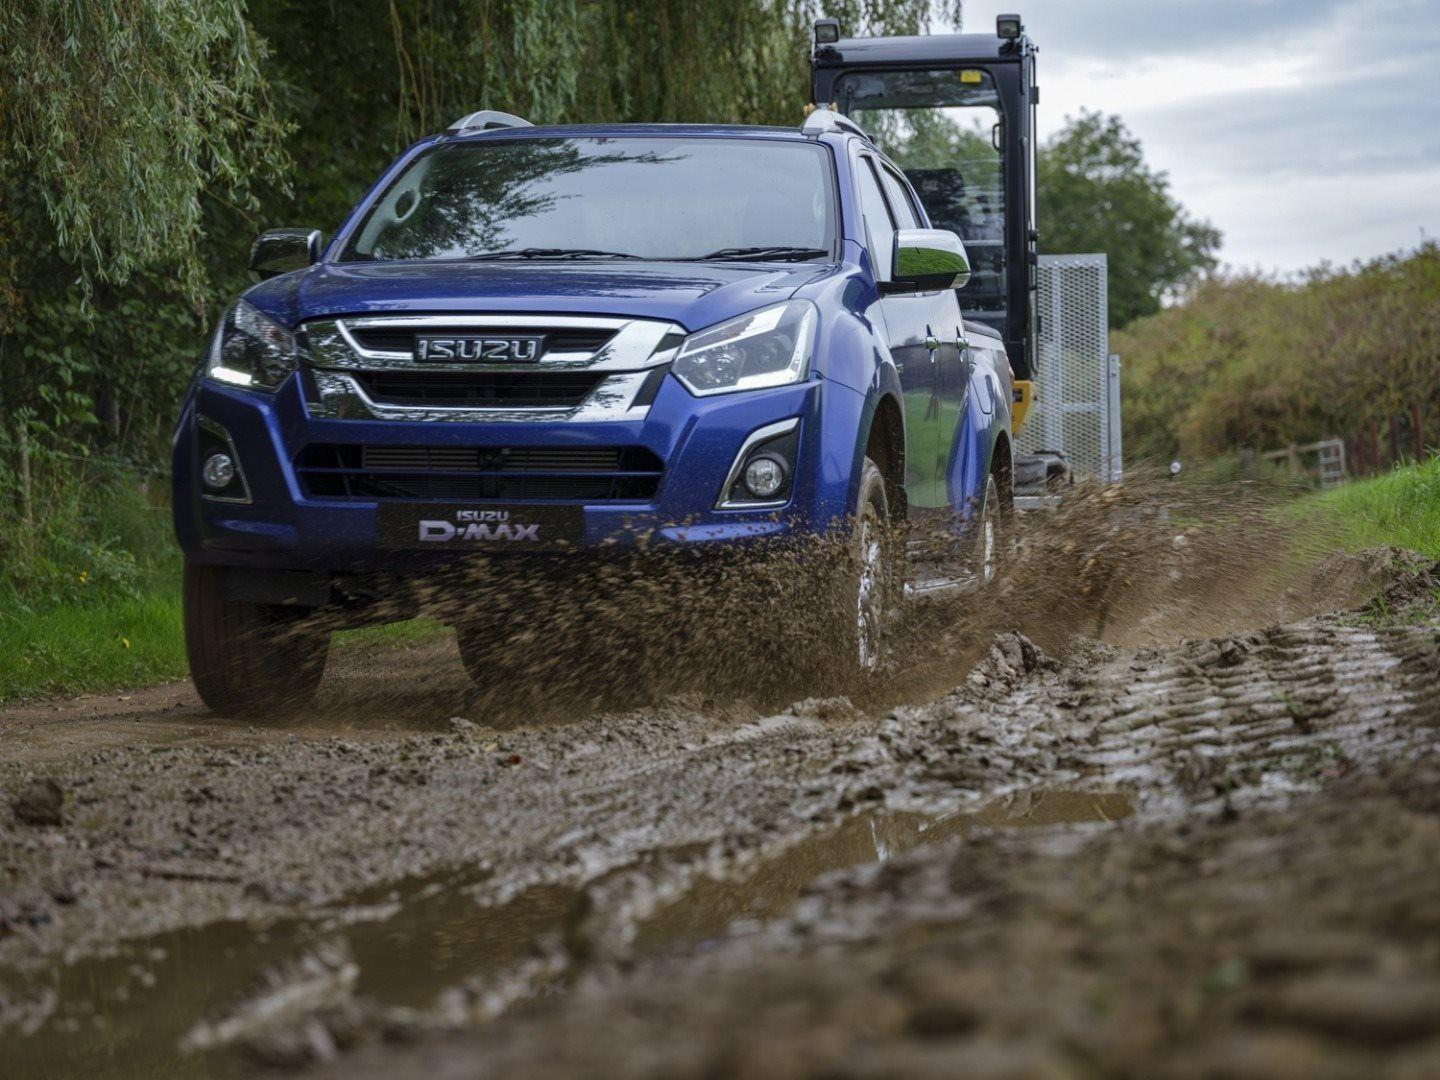 ISUZU D-MAX WINS PICK UP OF THE YEAR AT THE COMMERCIAL FLEET AWARDS 2018